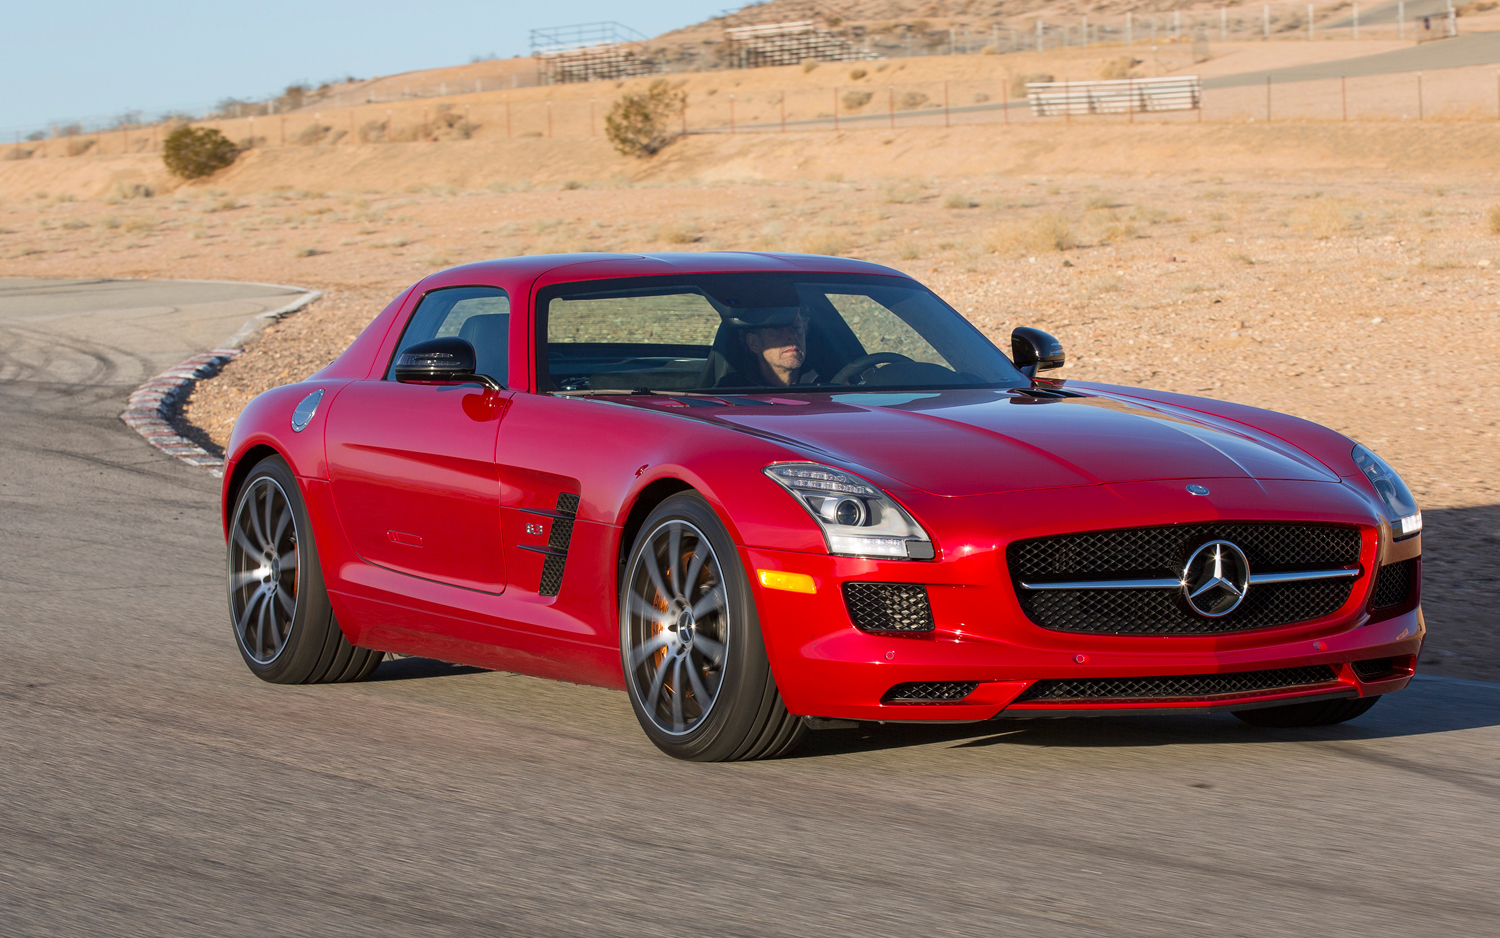 2013 SLS AMG GT Coupe Review